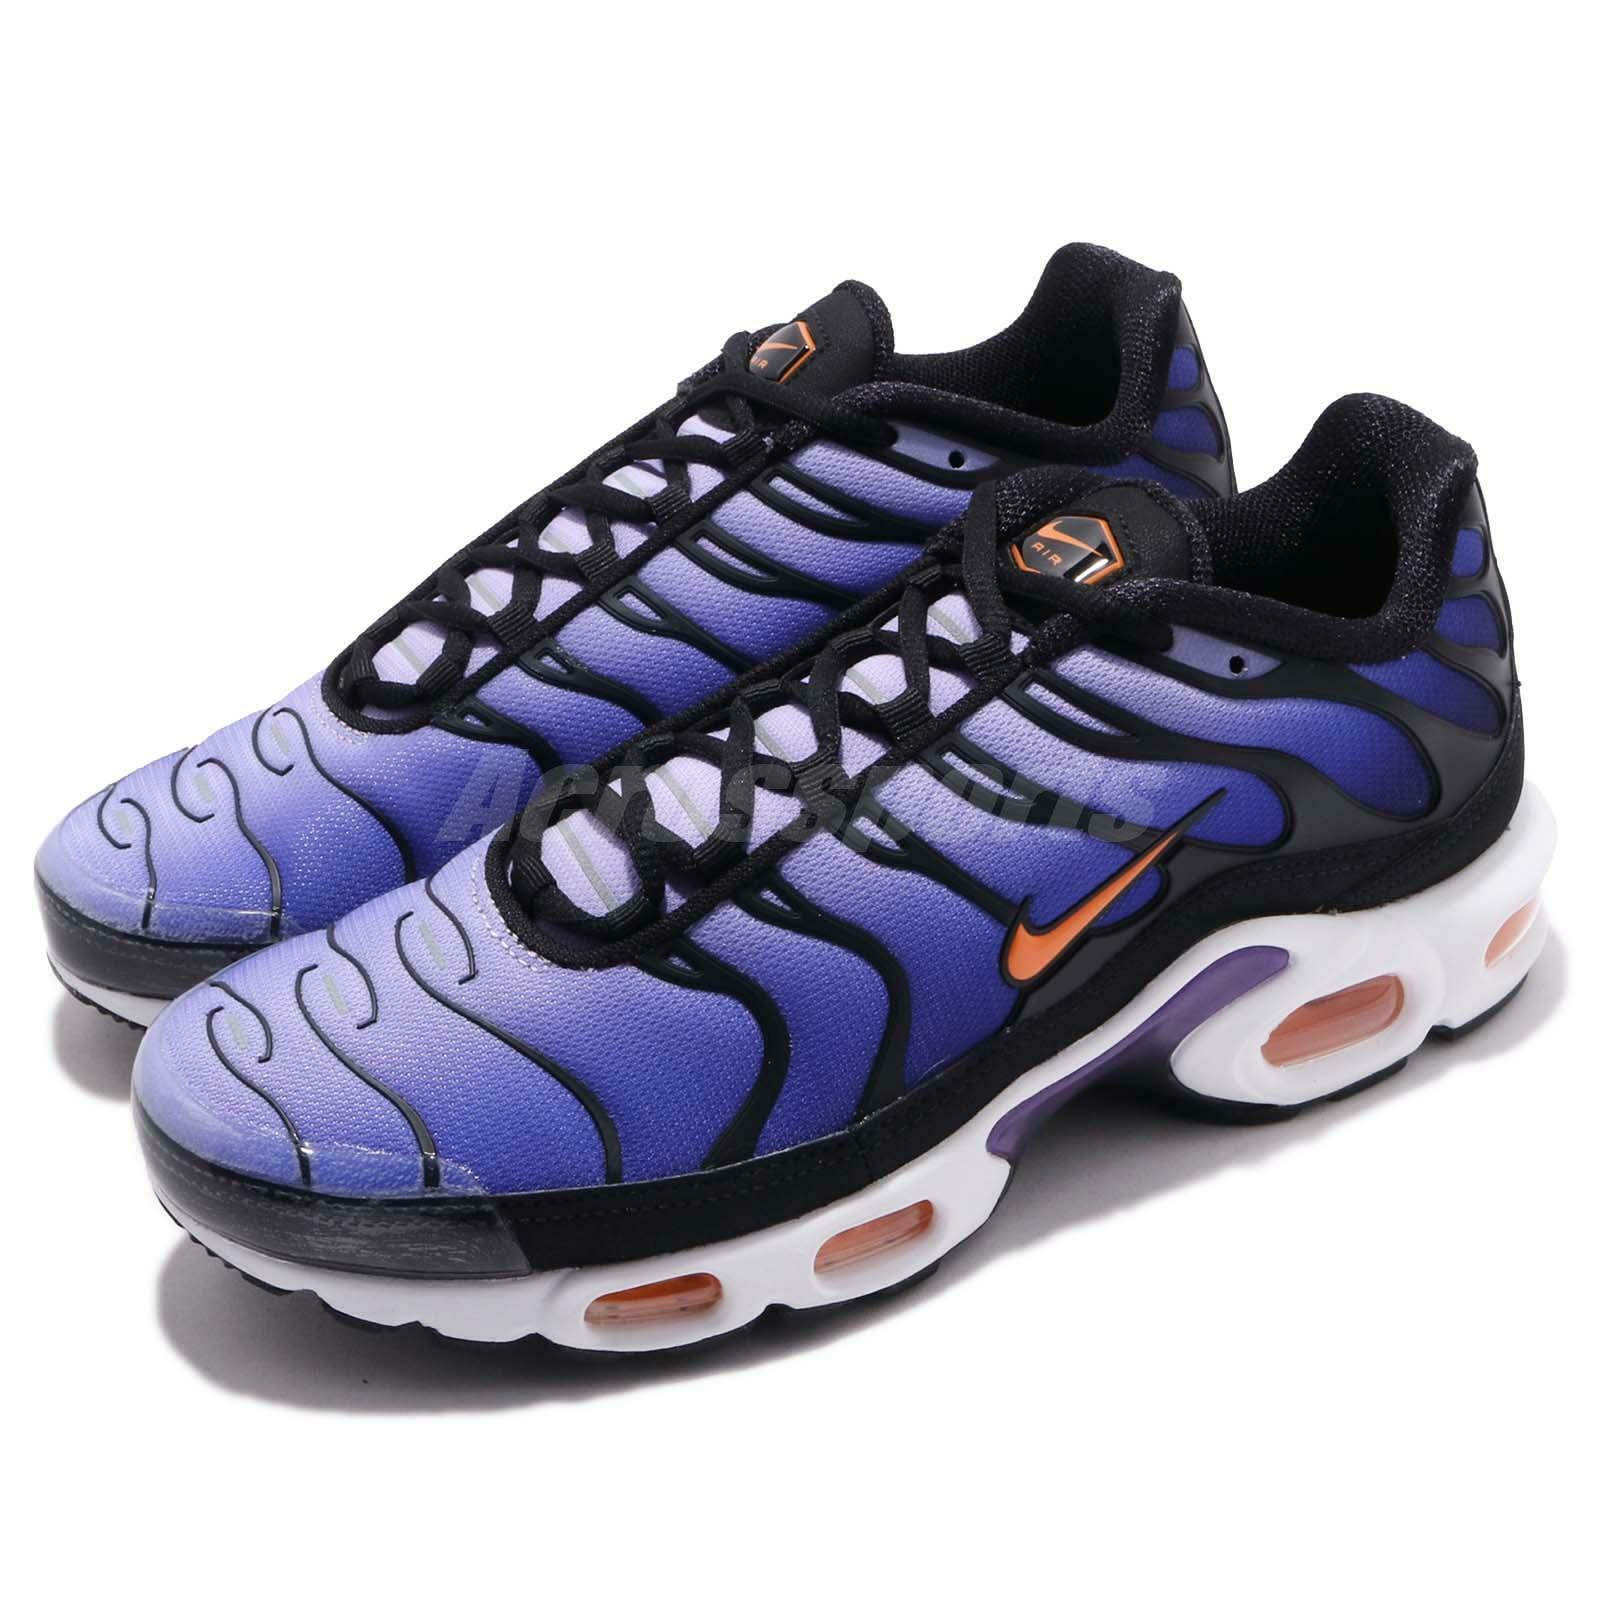 47f76db305 Nike Air Max Plus OG Voltage Purple Black orange Mens Running shoes  BQ4629-002